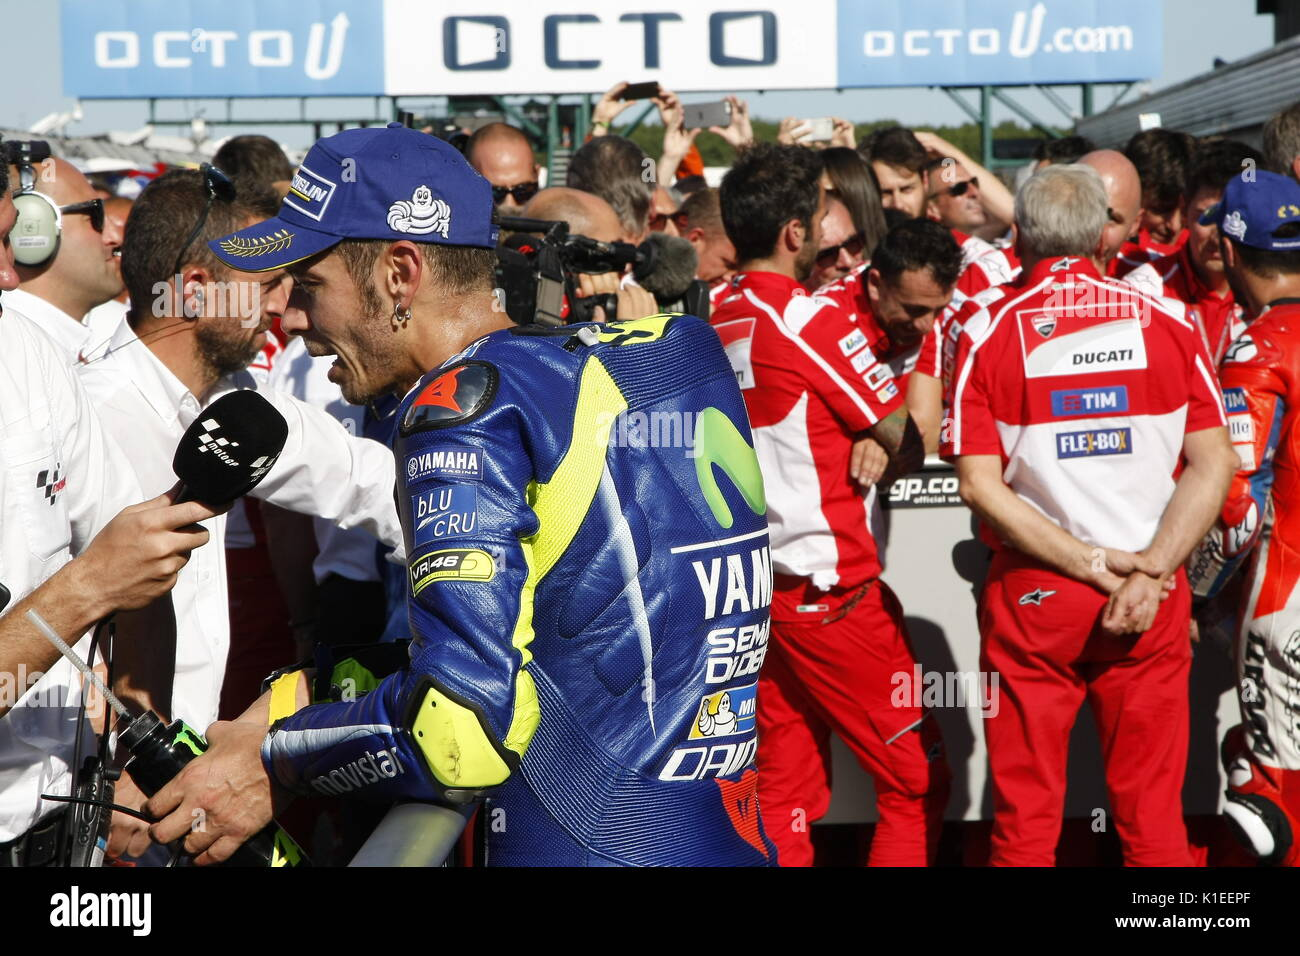 Silverstone, UK. 27th Aug, 2017.  Valentino rossi talks with TV after finishing third at the OCTO British MotoGP Credit: Motofoto/Alamy Live News - Stock Image